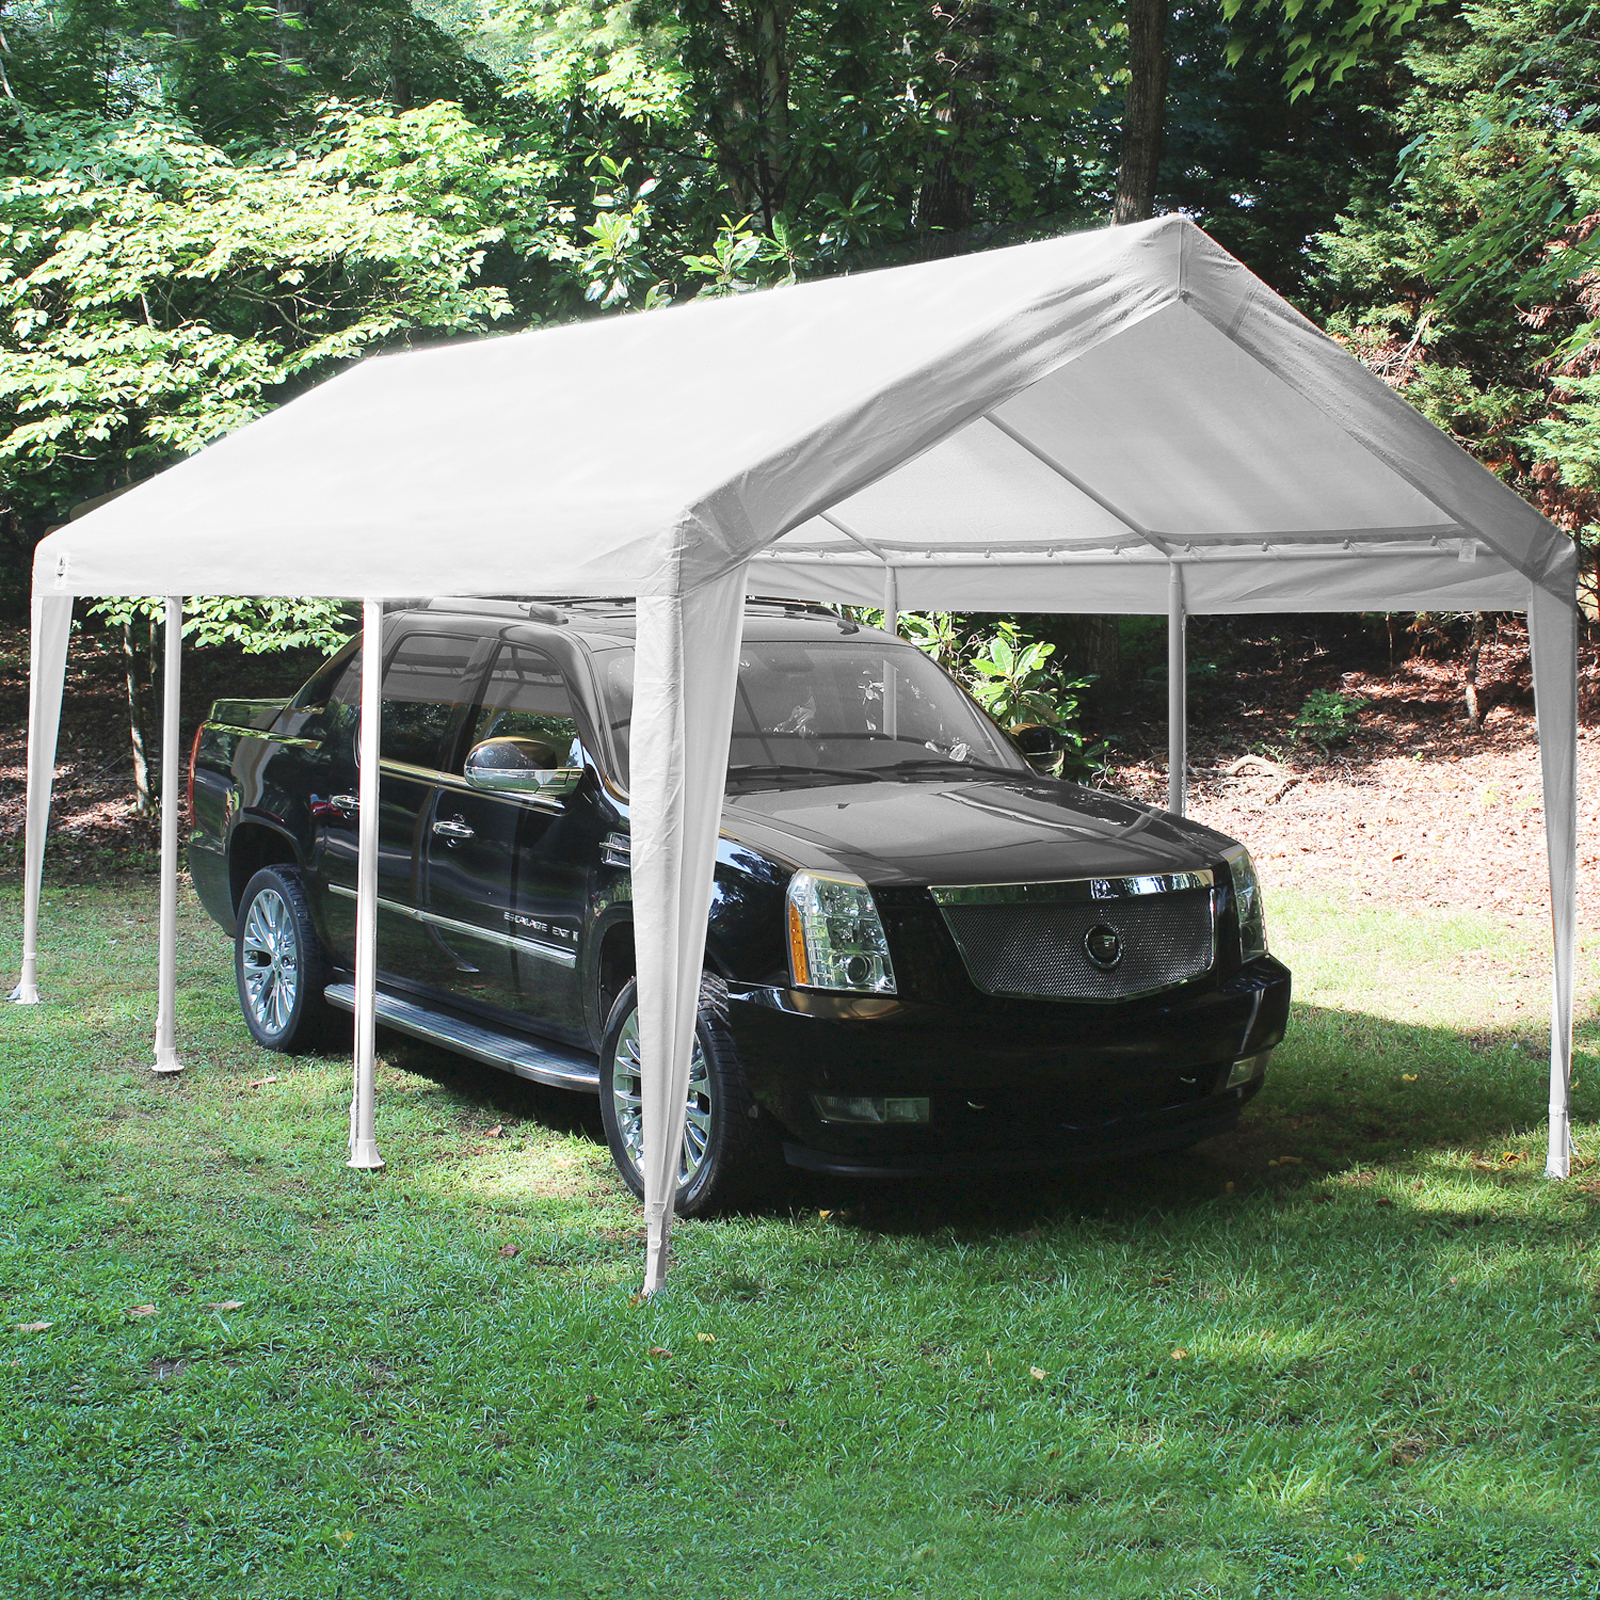 & ShelterLogic 10 x 20 ft. Canopy Replacement Cover | Hayneedle